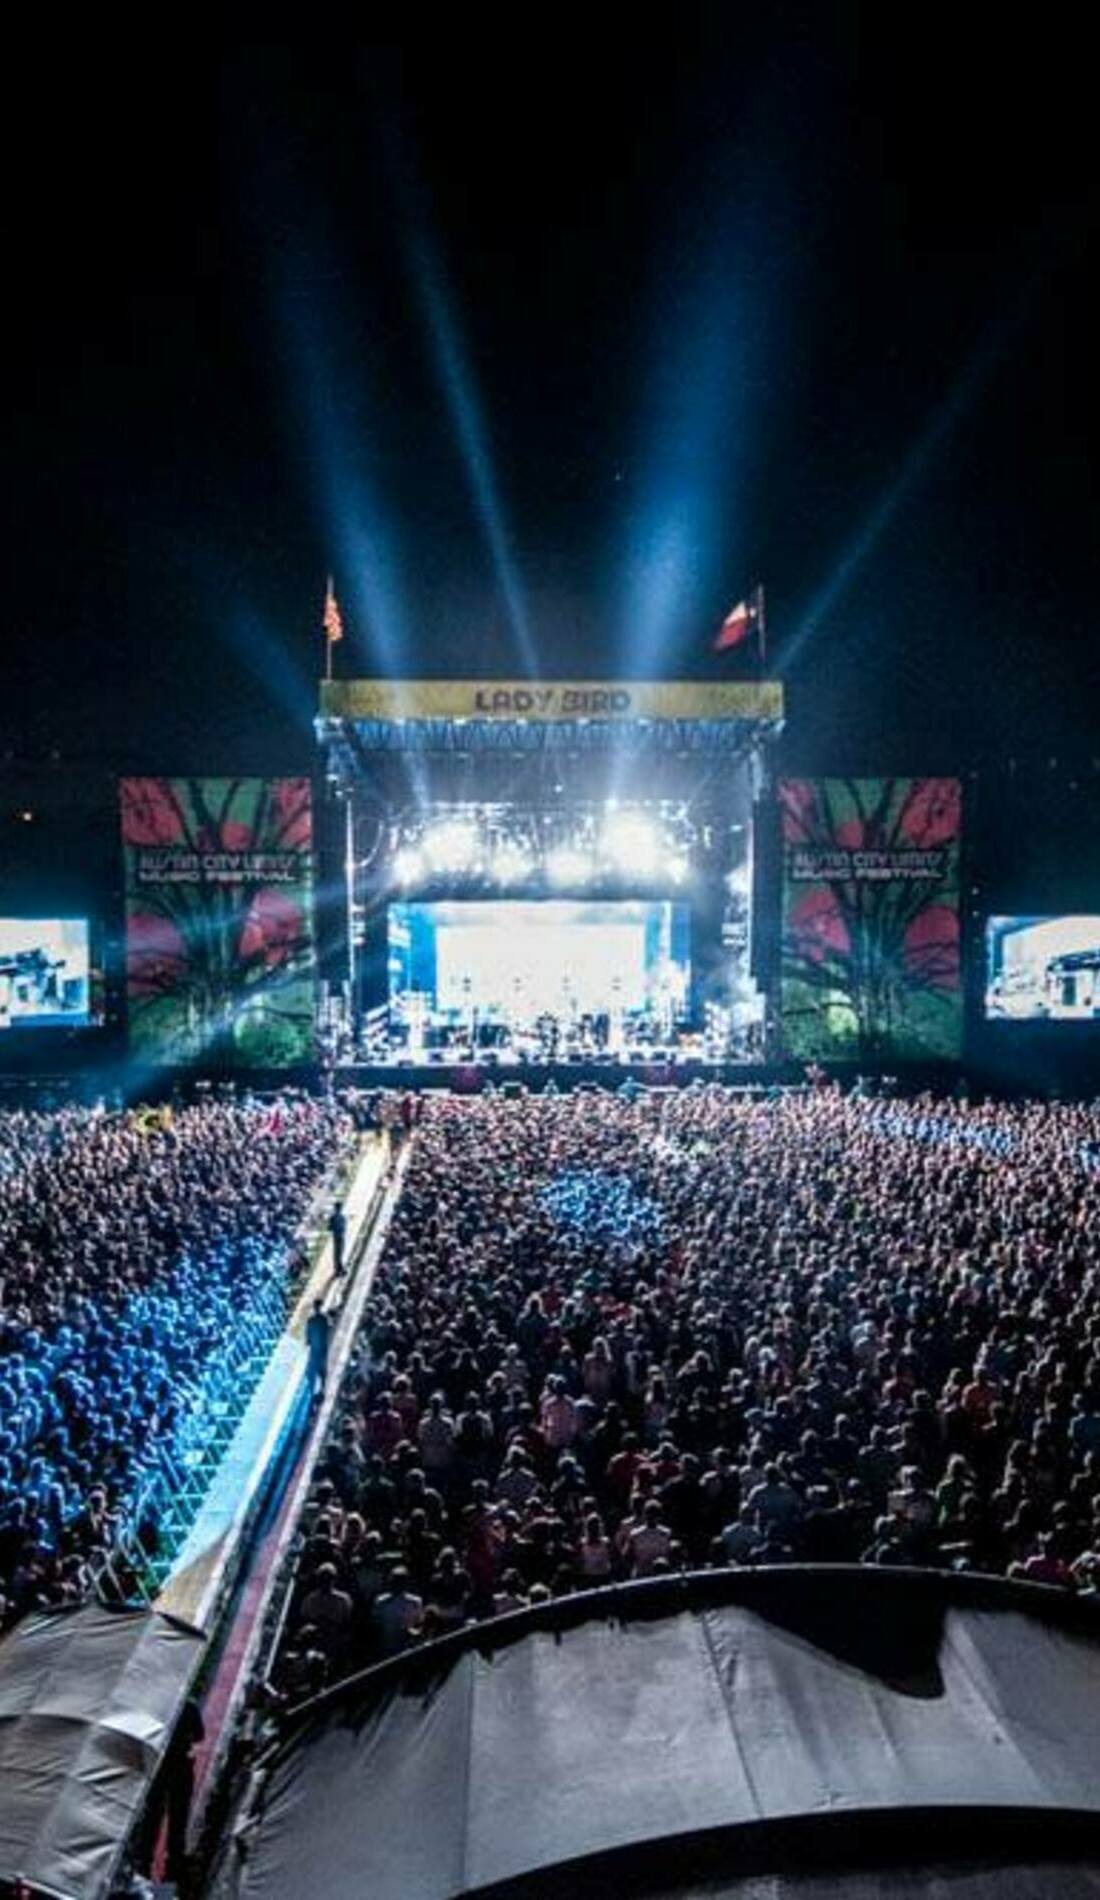 A ACL Fest Late Night Show live event